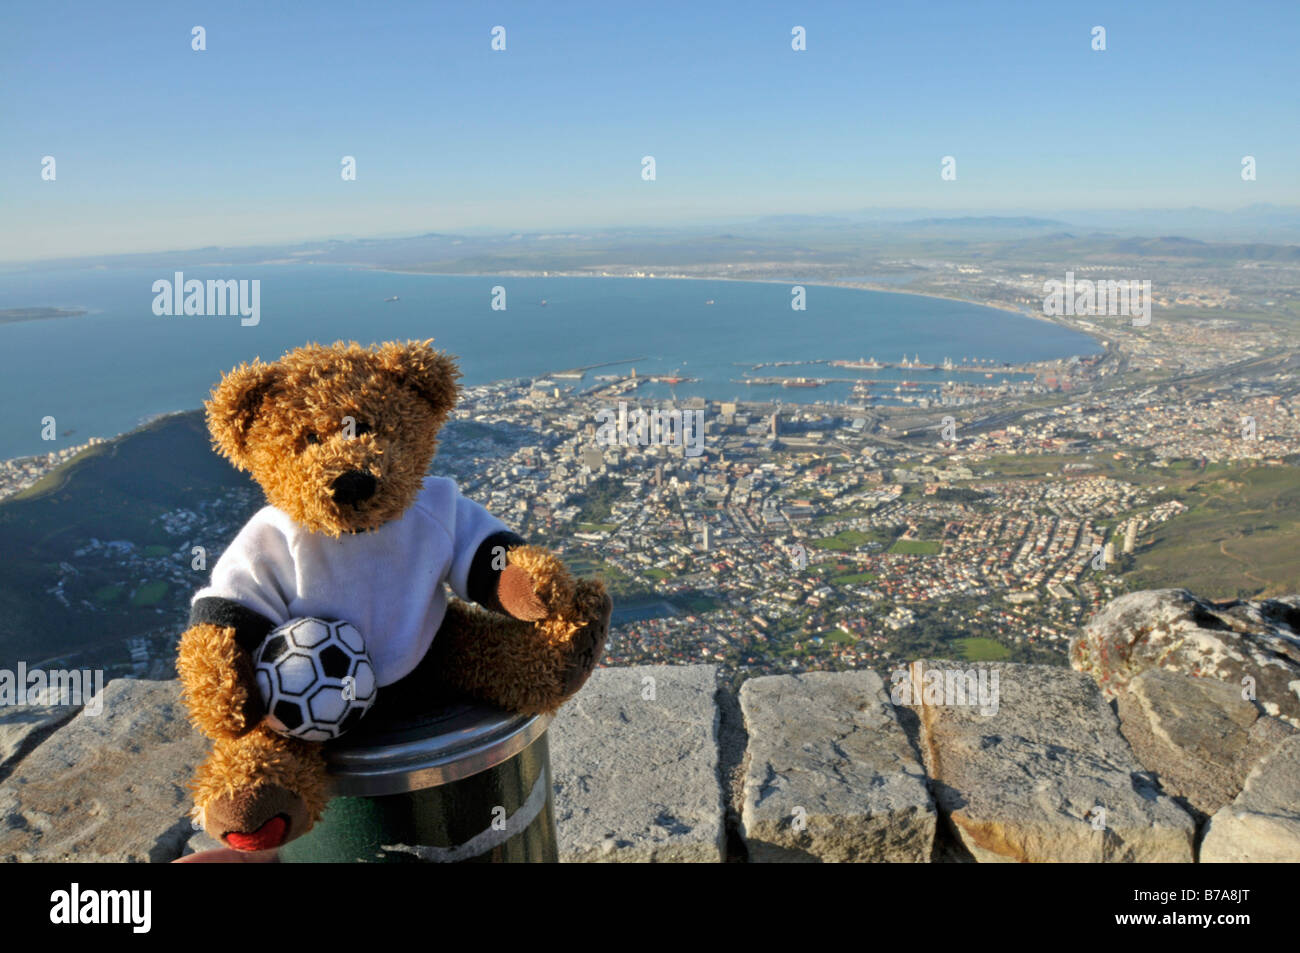 Soccer teddy bear in front of a view over Cape Town from Table Mountain, South Africa - Stock Image